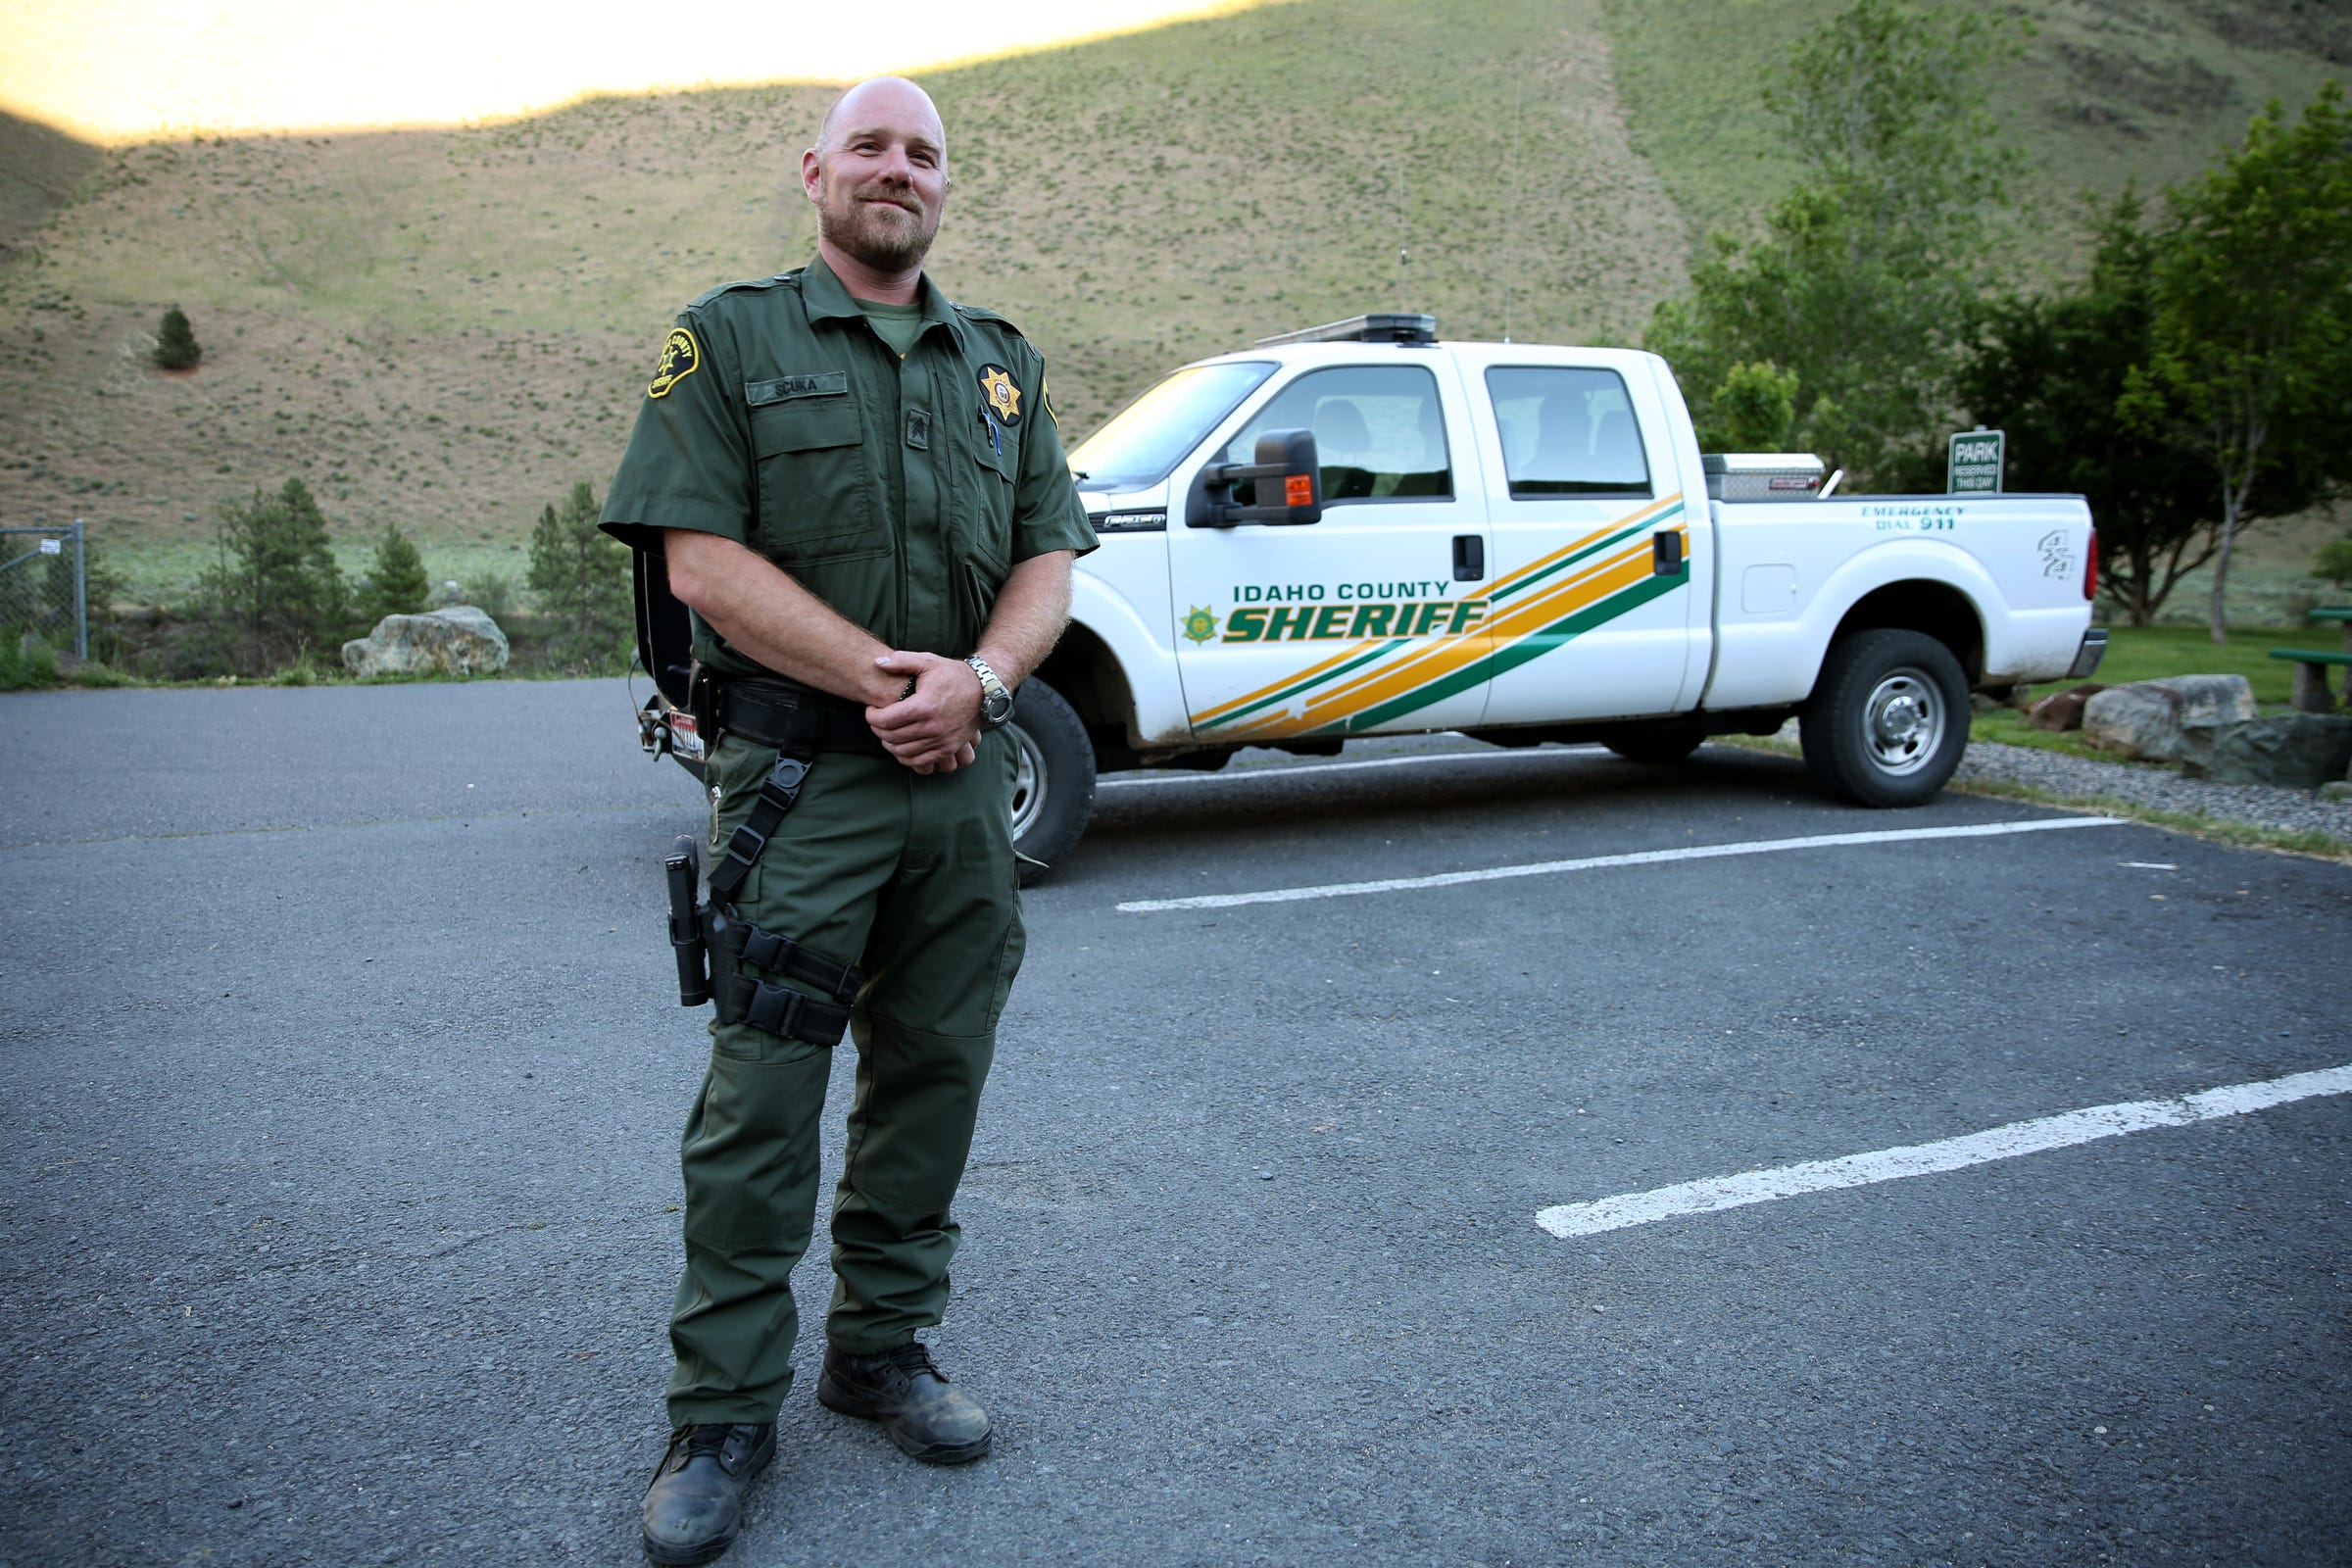 Sgt. Justin Scuka, with the Idaho County Sheriff's Office, speaks on wildfire evacuations plans in Riggins, Idaho on June 11, 2019.